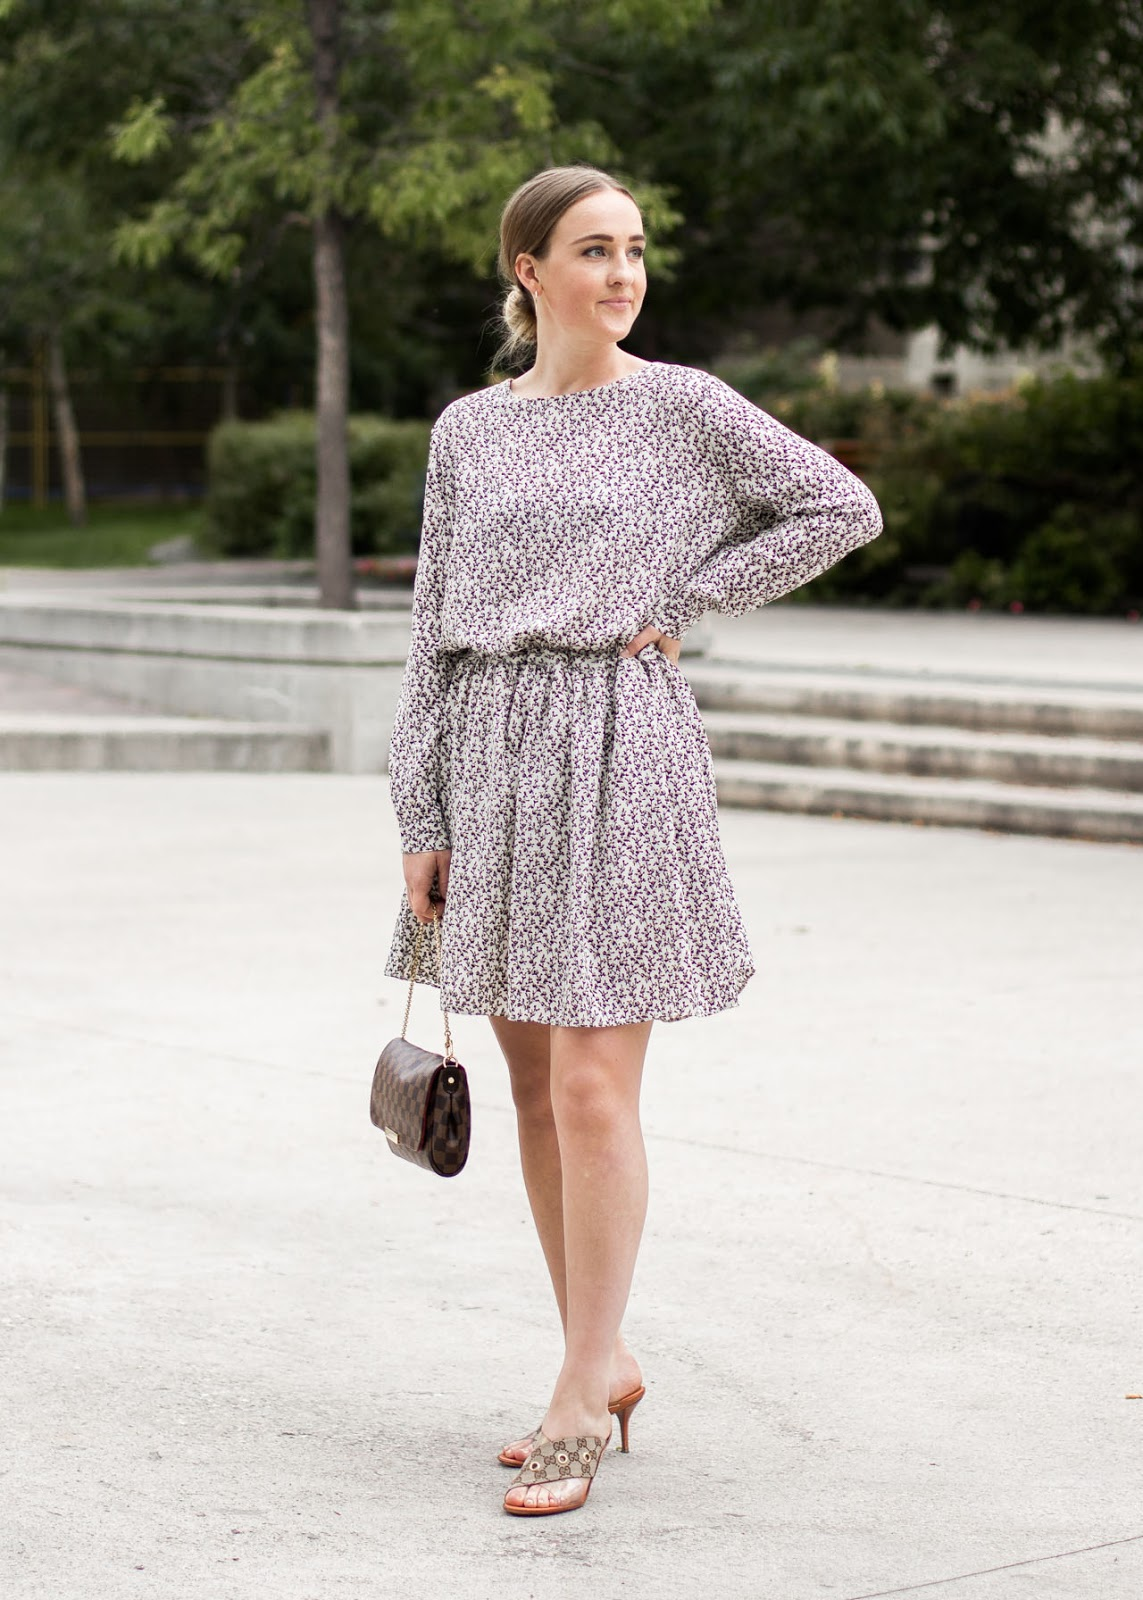 Noul dress - Gucci shoes - Louis Vuitton bag - Oak & Fort earrings - Outfit